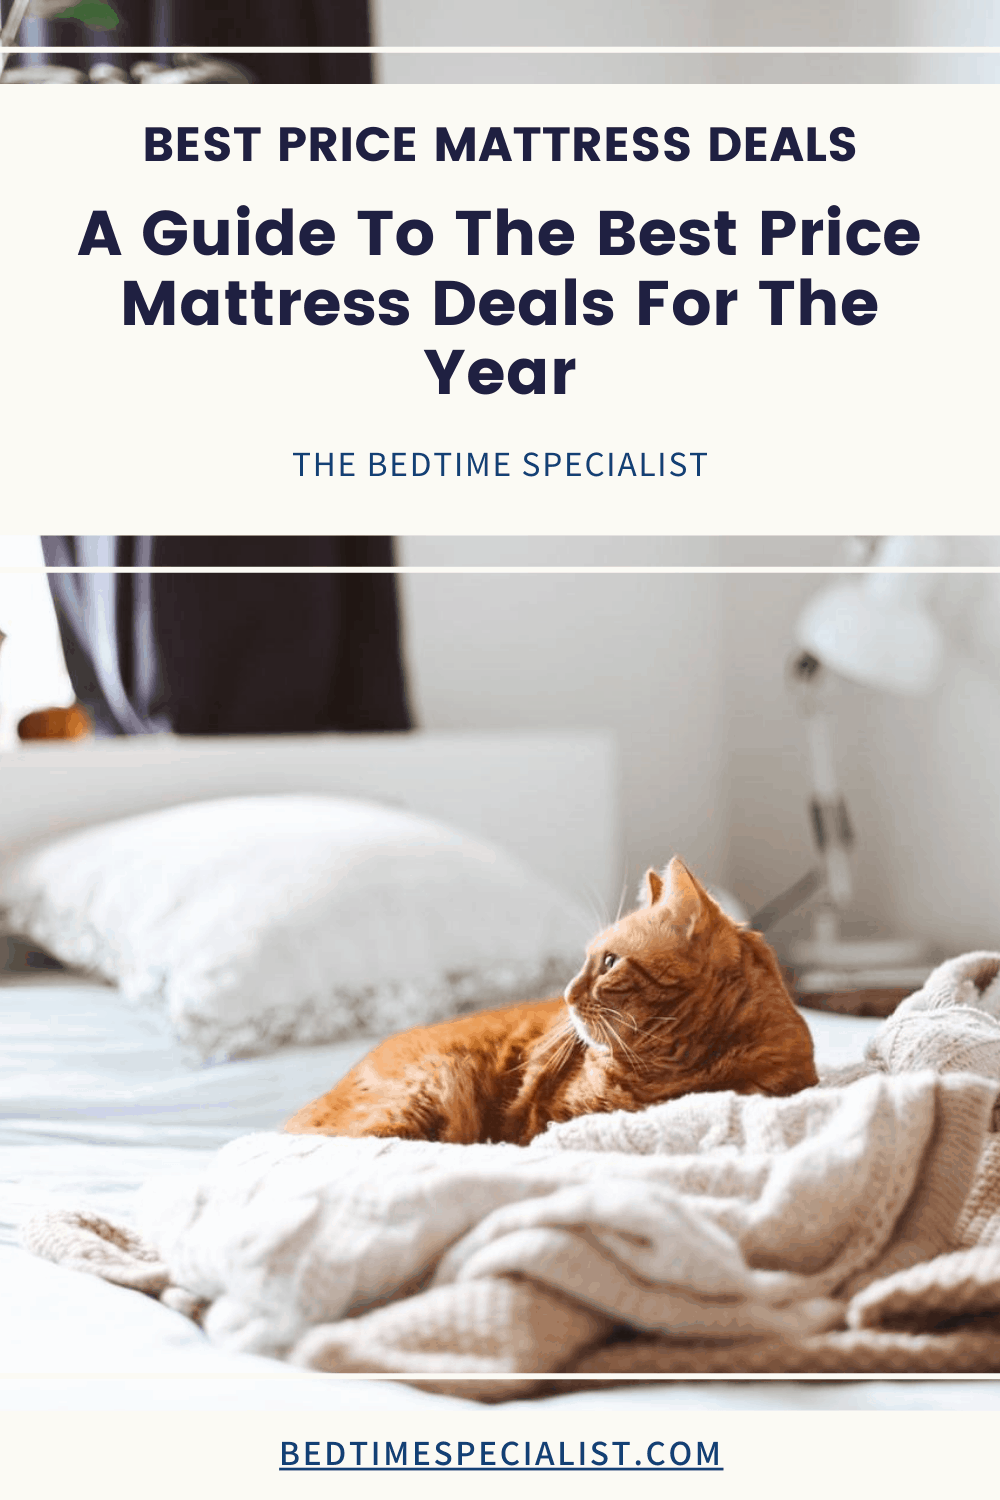 Best Price Mattress Deals